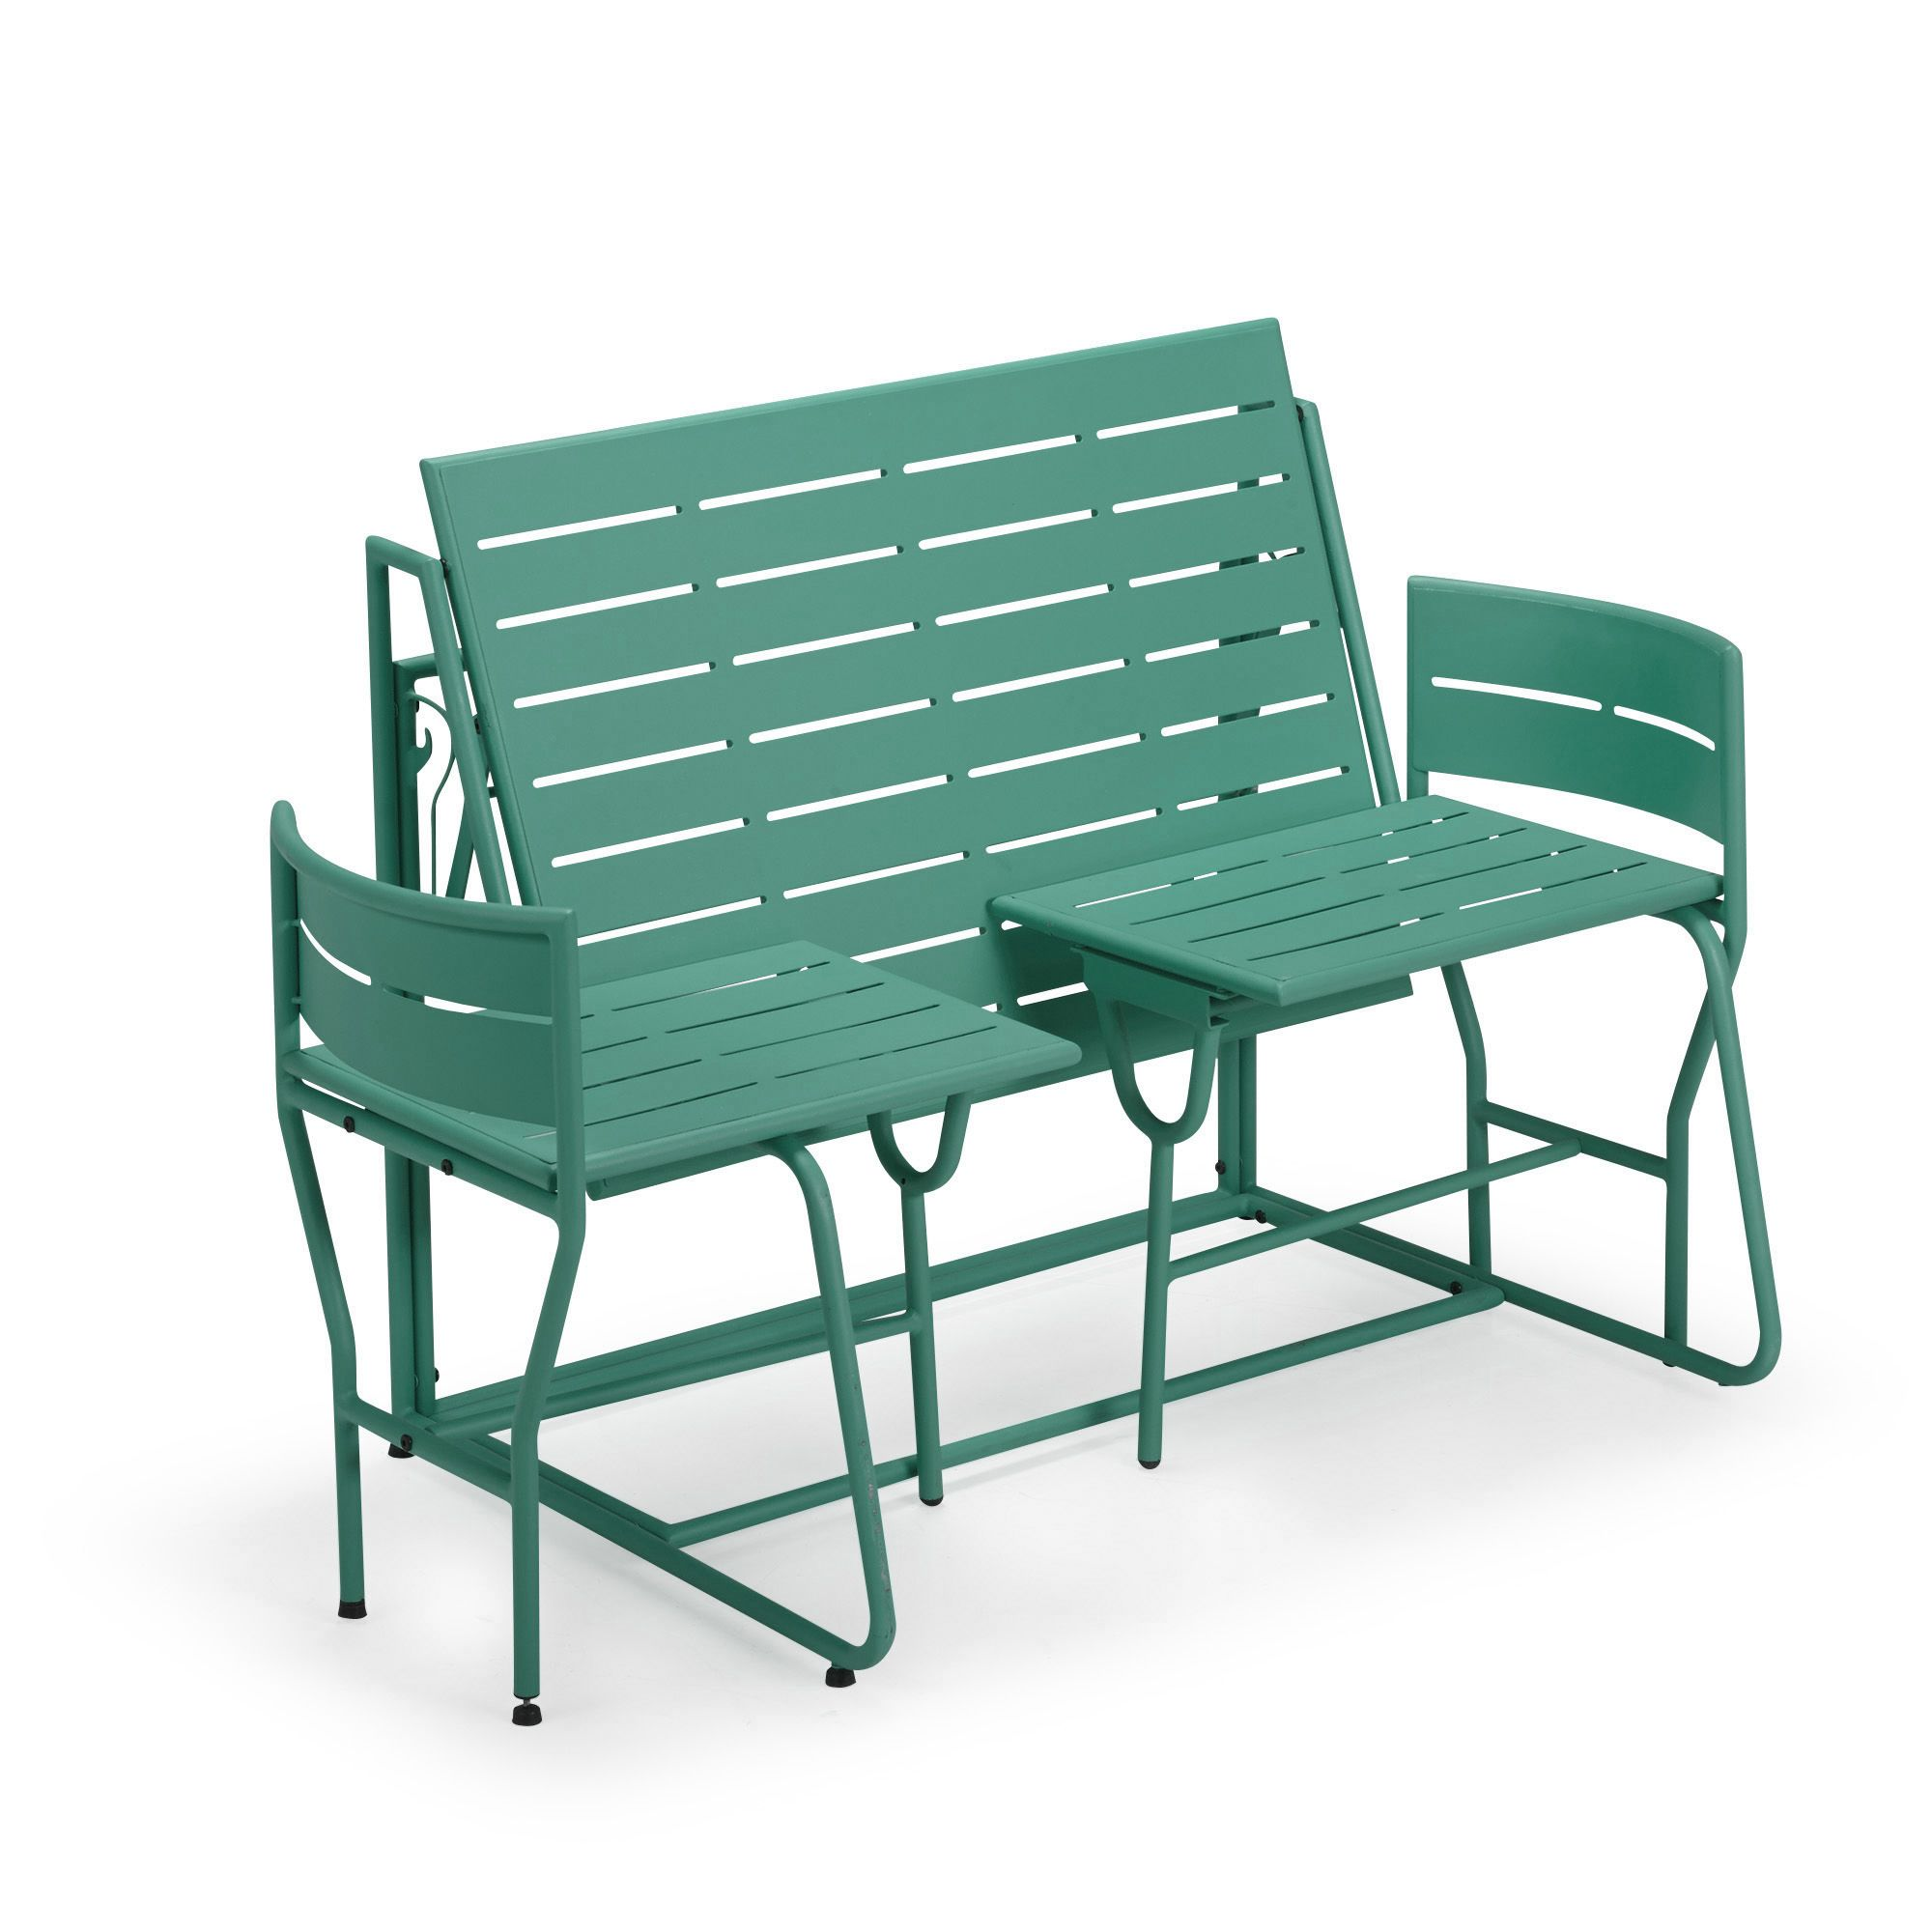 Salon-de-balcon-jardin-design-transformable-2-en-1-picnic-alinea-02